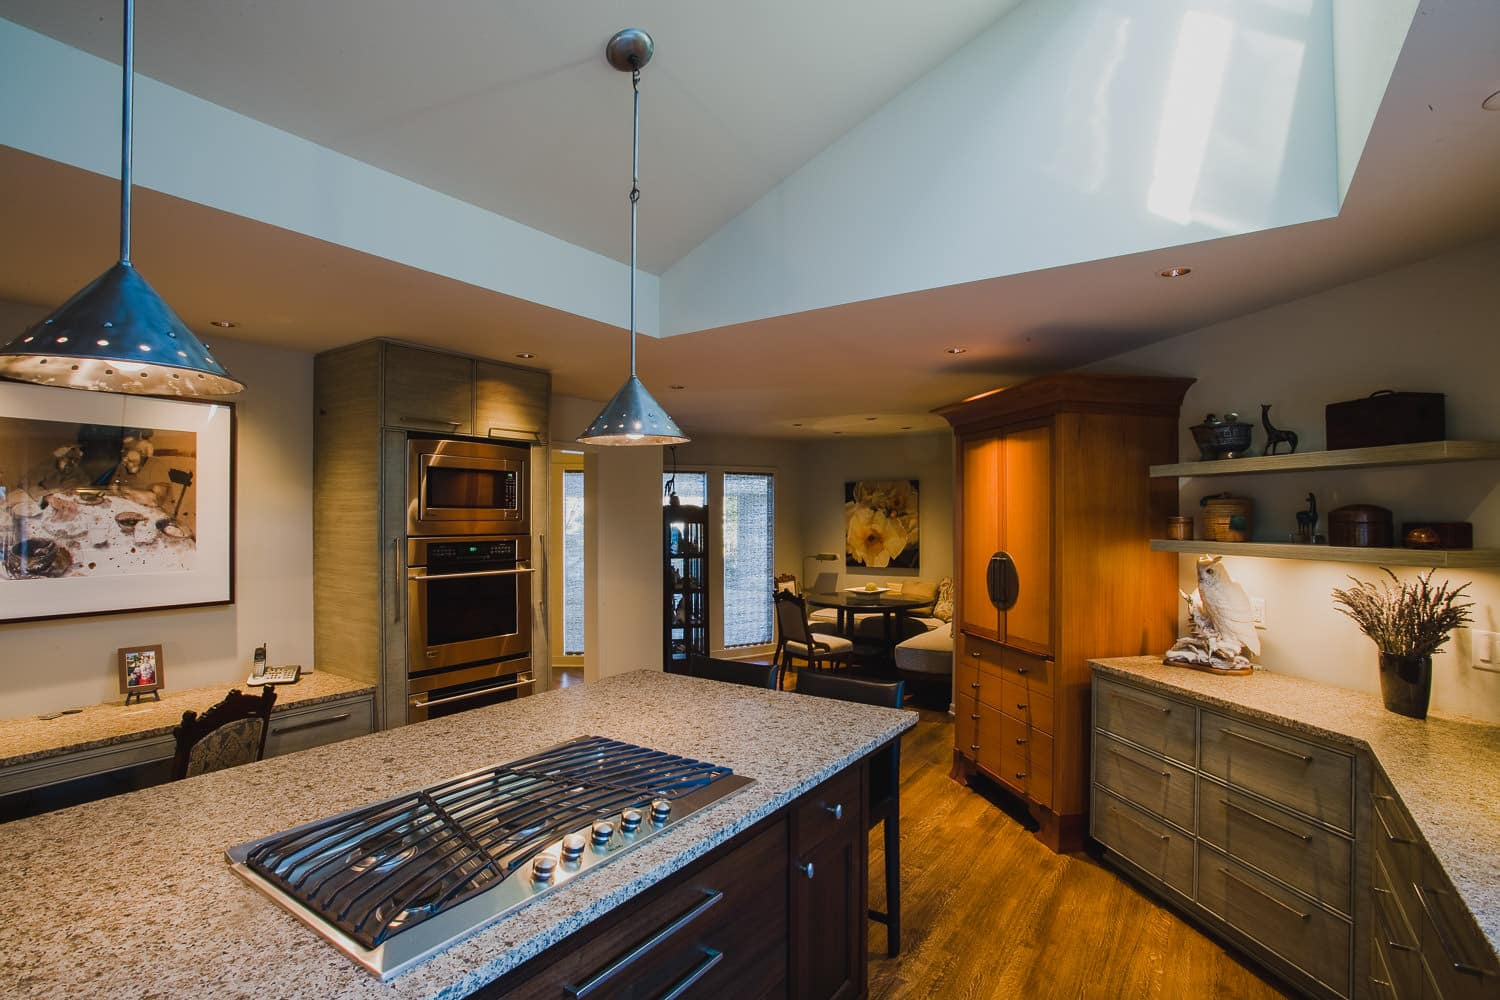 kitchen, cooktop, island, pendant light, granite counter, ovens, nook, custom refrigerator